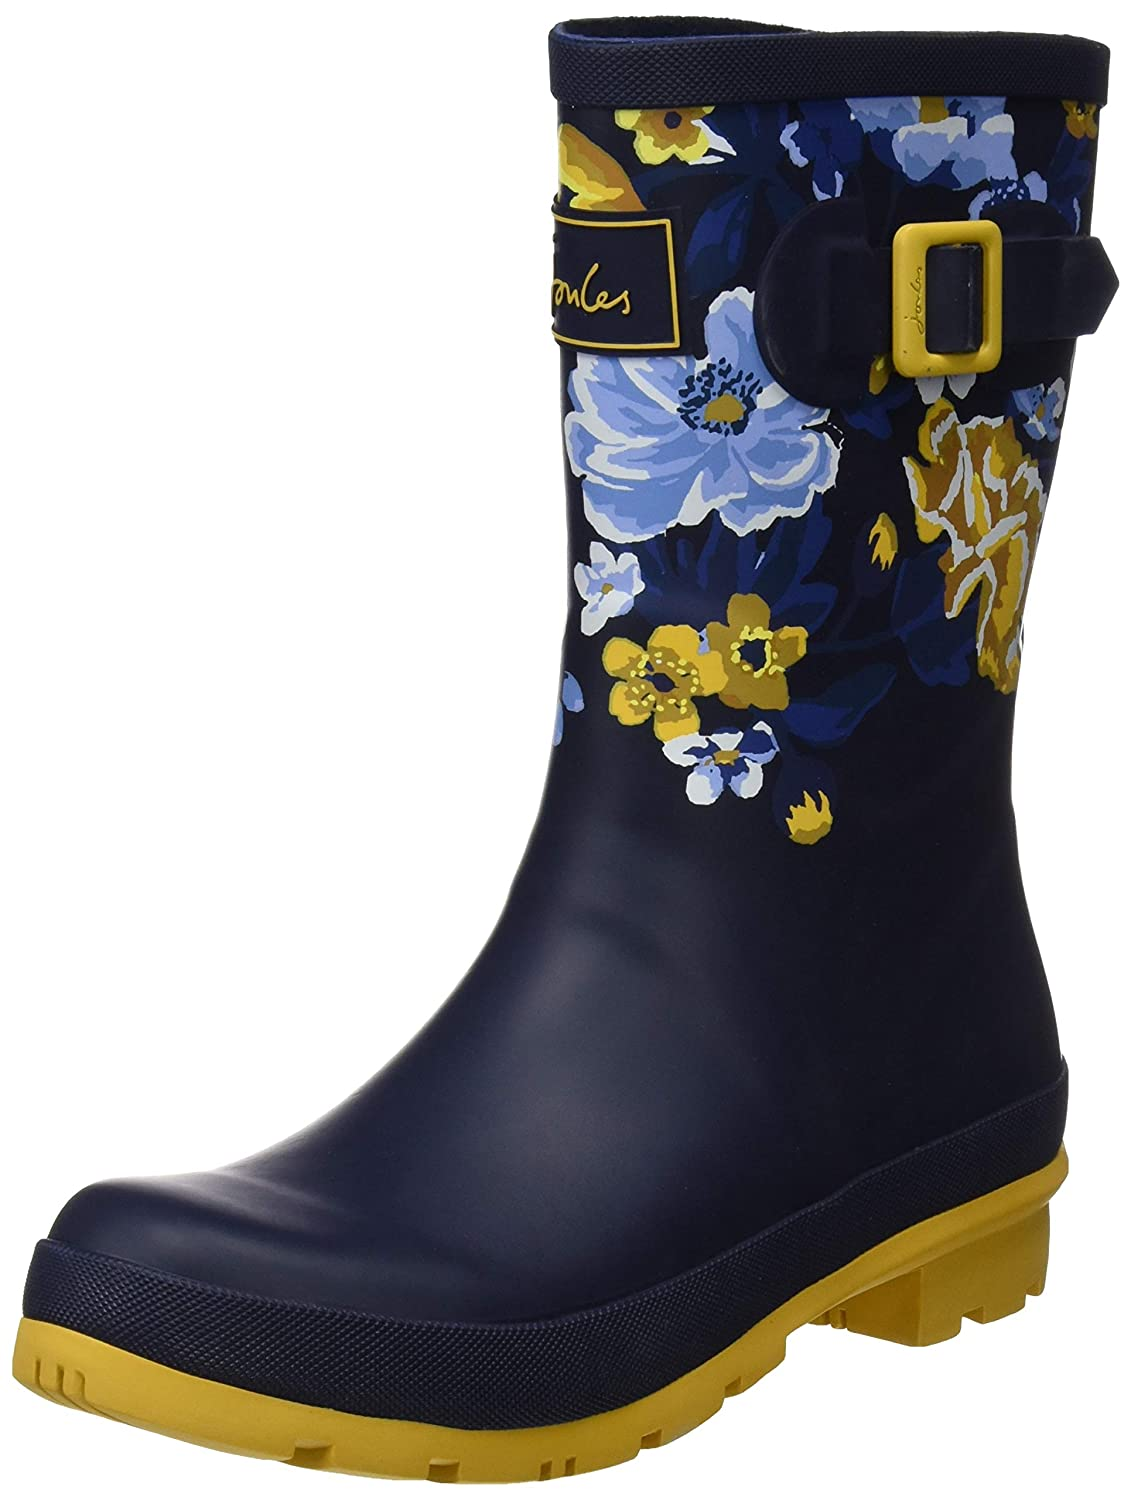 Navy Botanical Joules Women's Molly Welly Rain Boot